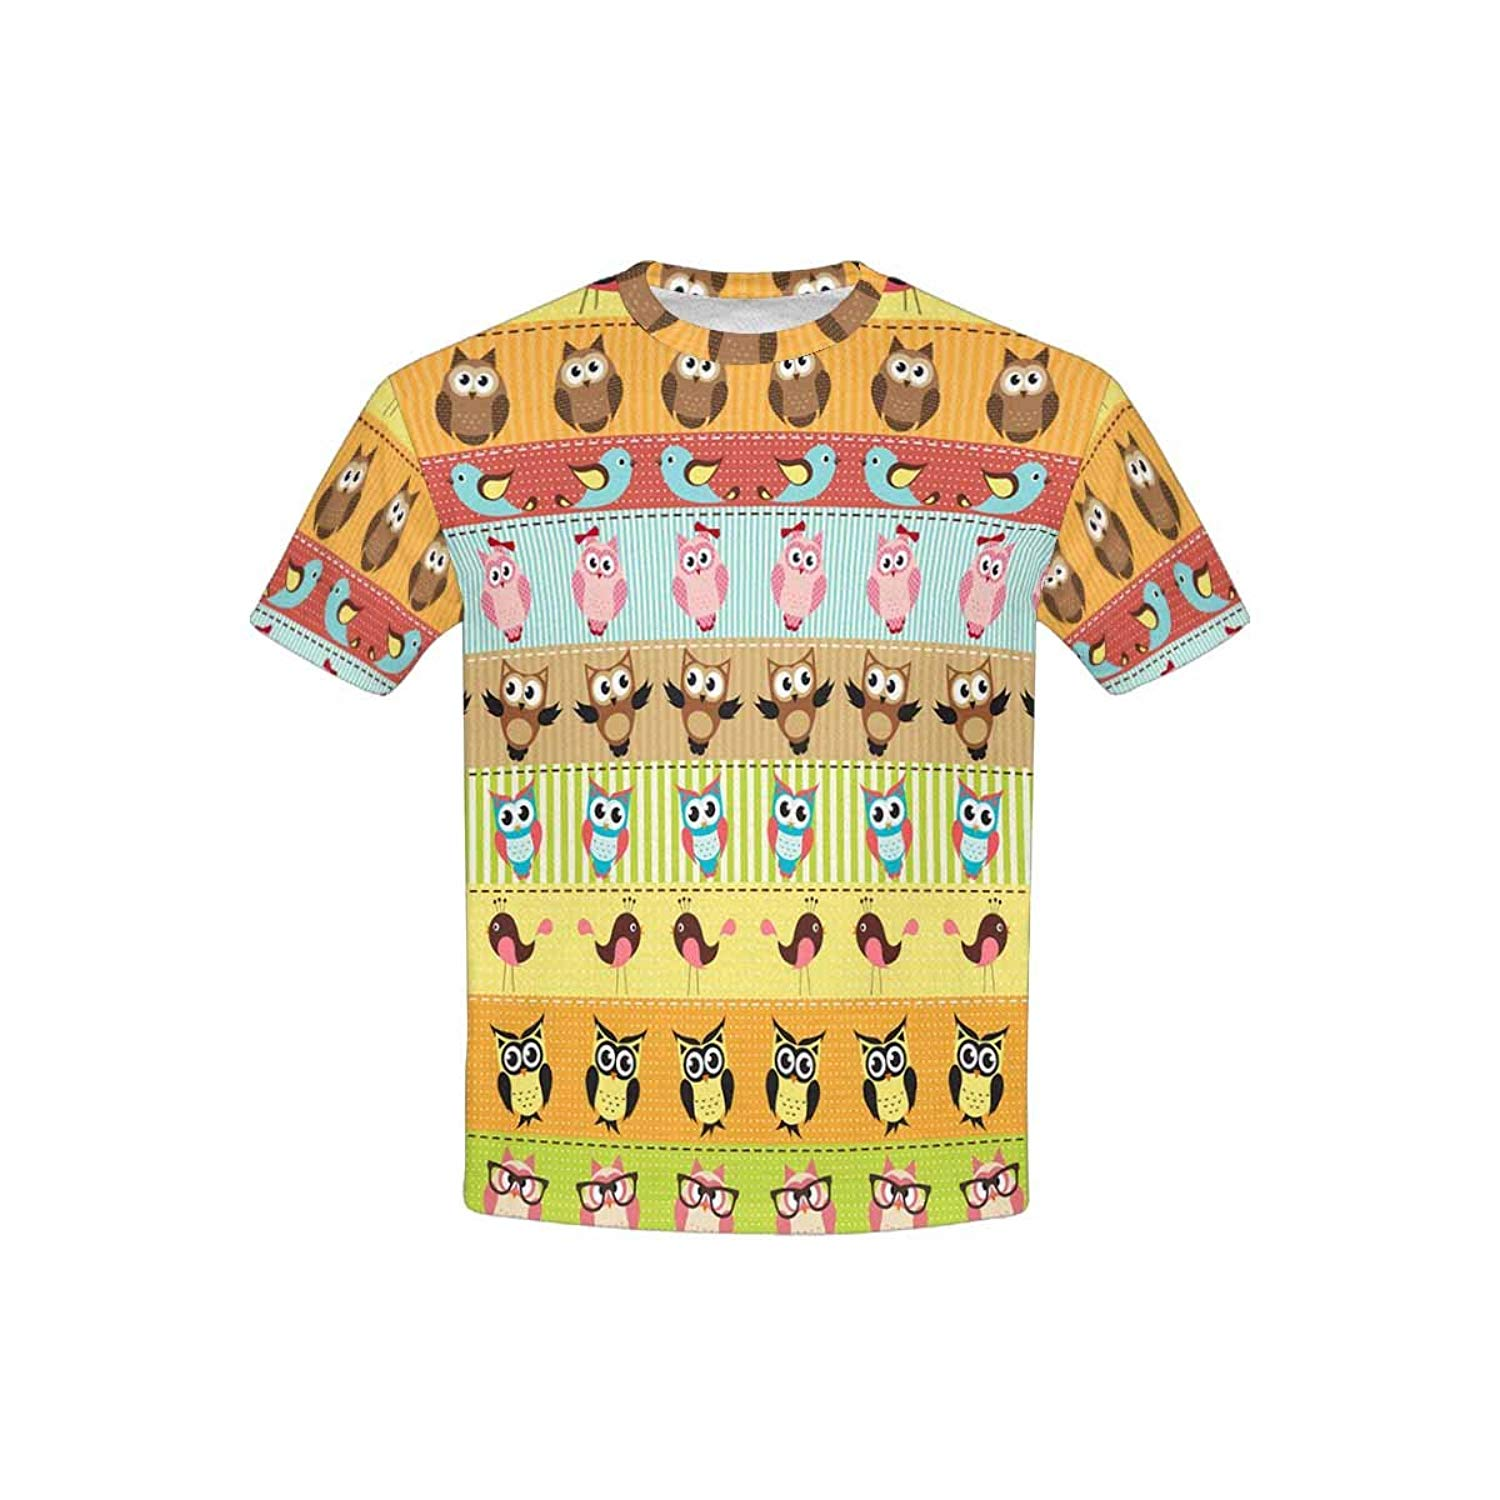 XS-XL INTERESTPRINT Childs T-Shirt Set of Colorful Cartoon Owls on Branches